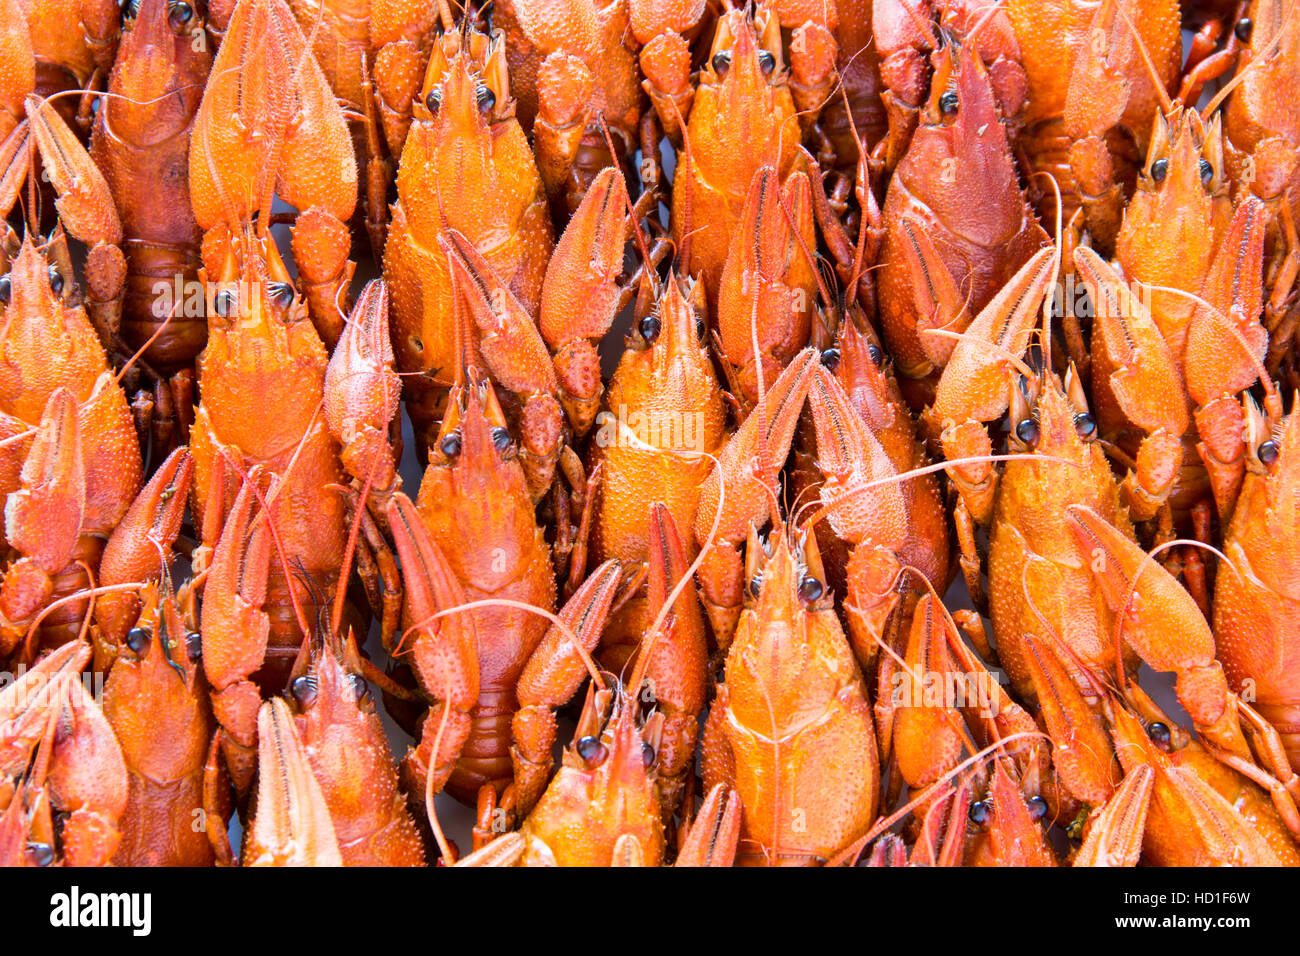 Photo of background with red boiled crawfishes - Stock Image